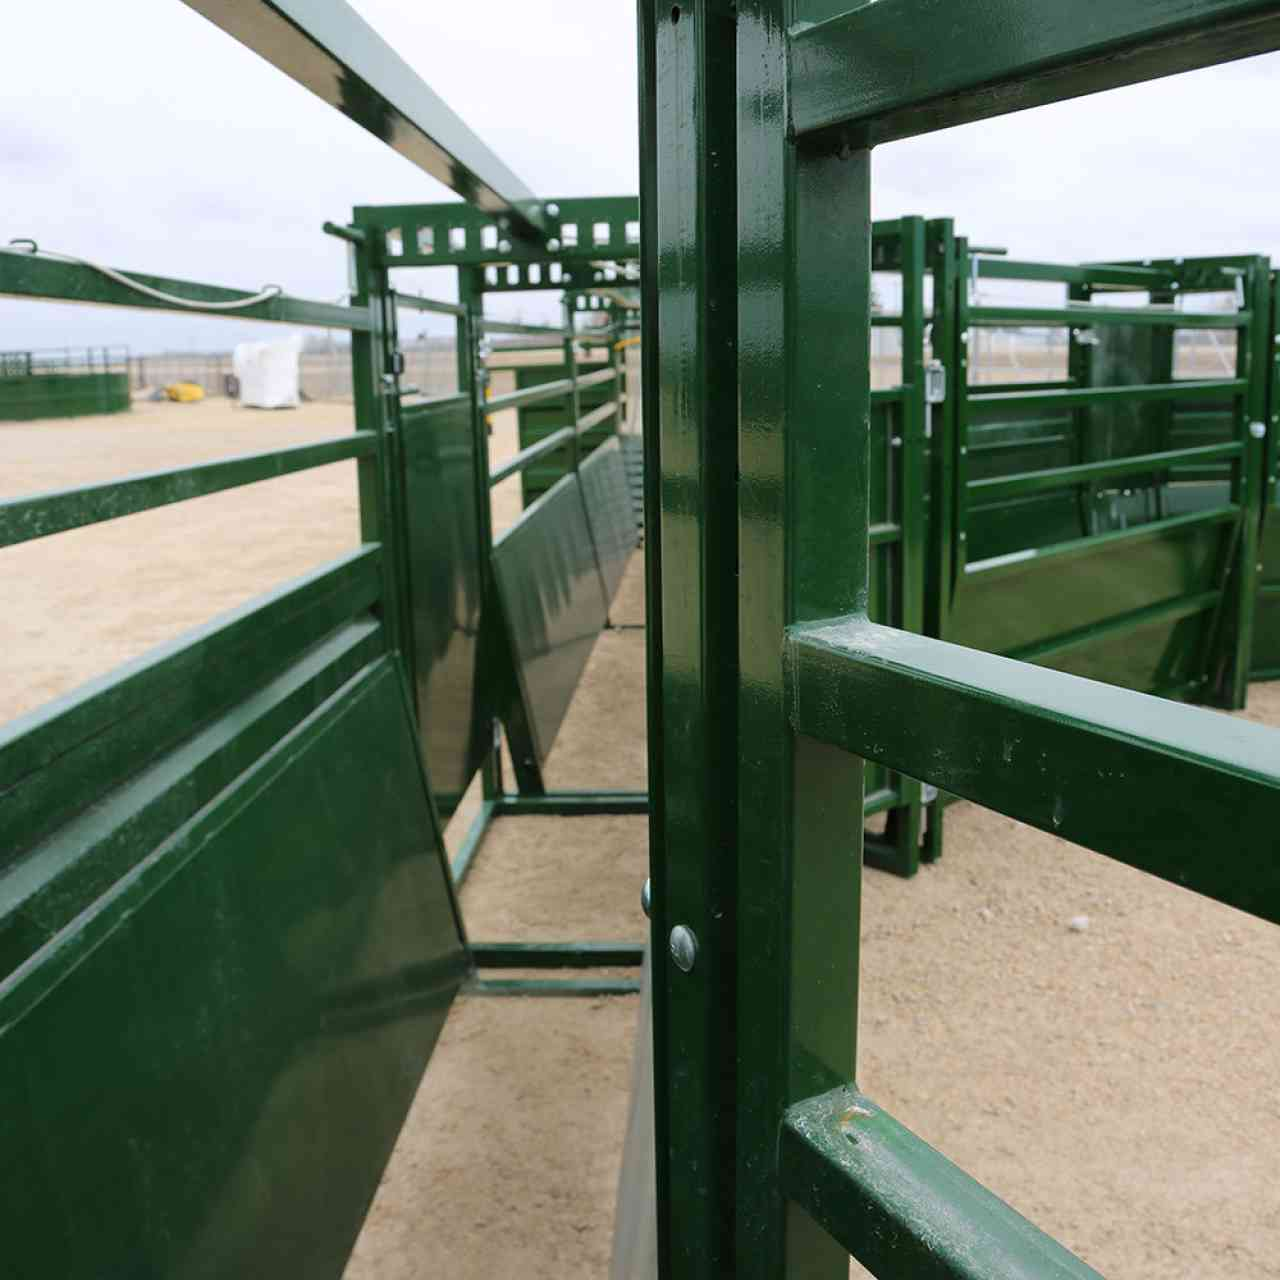 Inside view of adjustable cattle alley